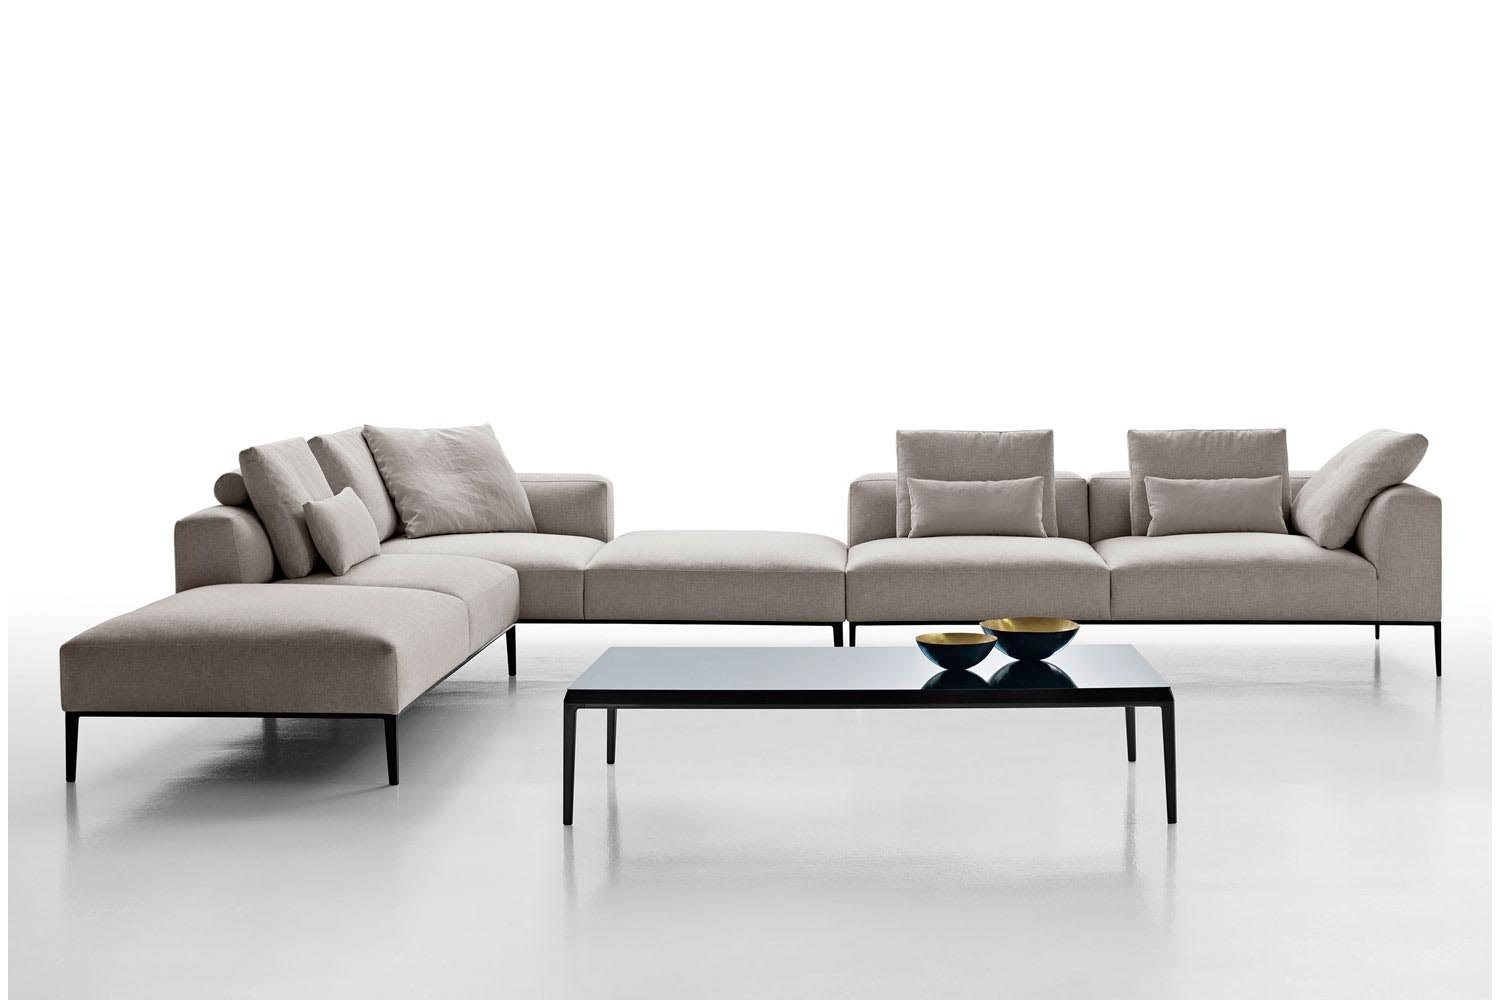 Michel Effe Sofa by Antonio Citterio for B&B Italia